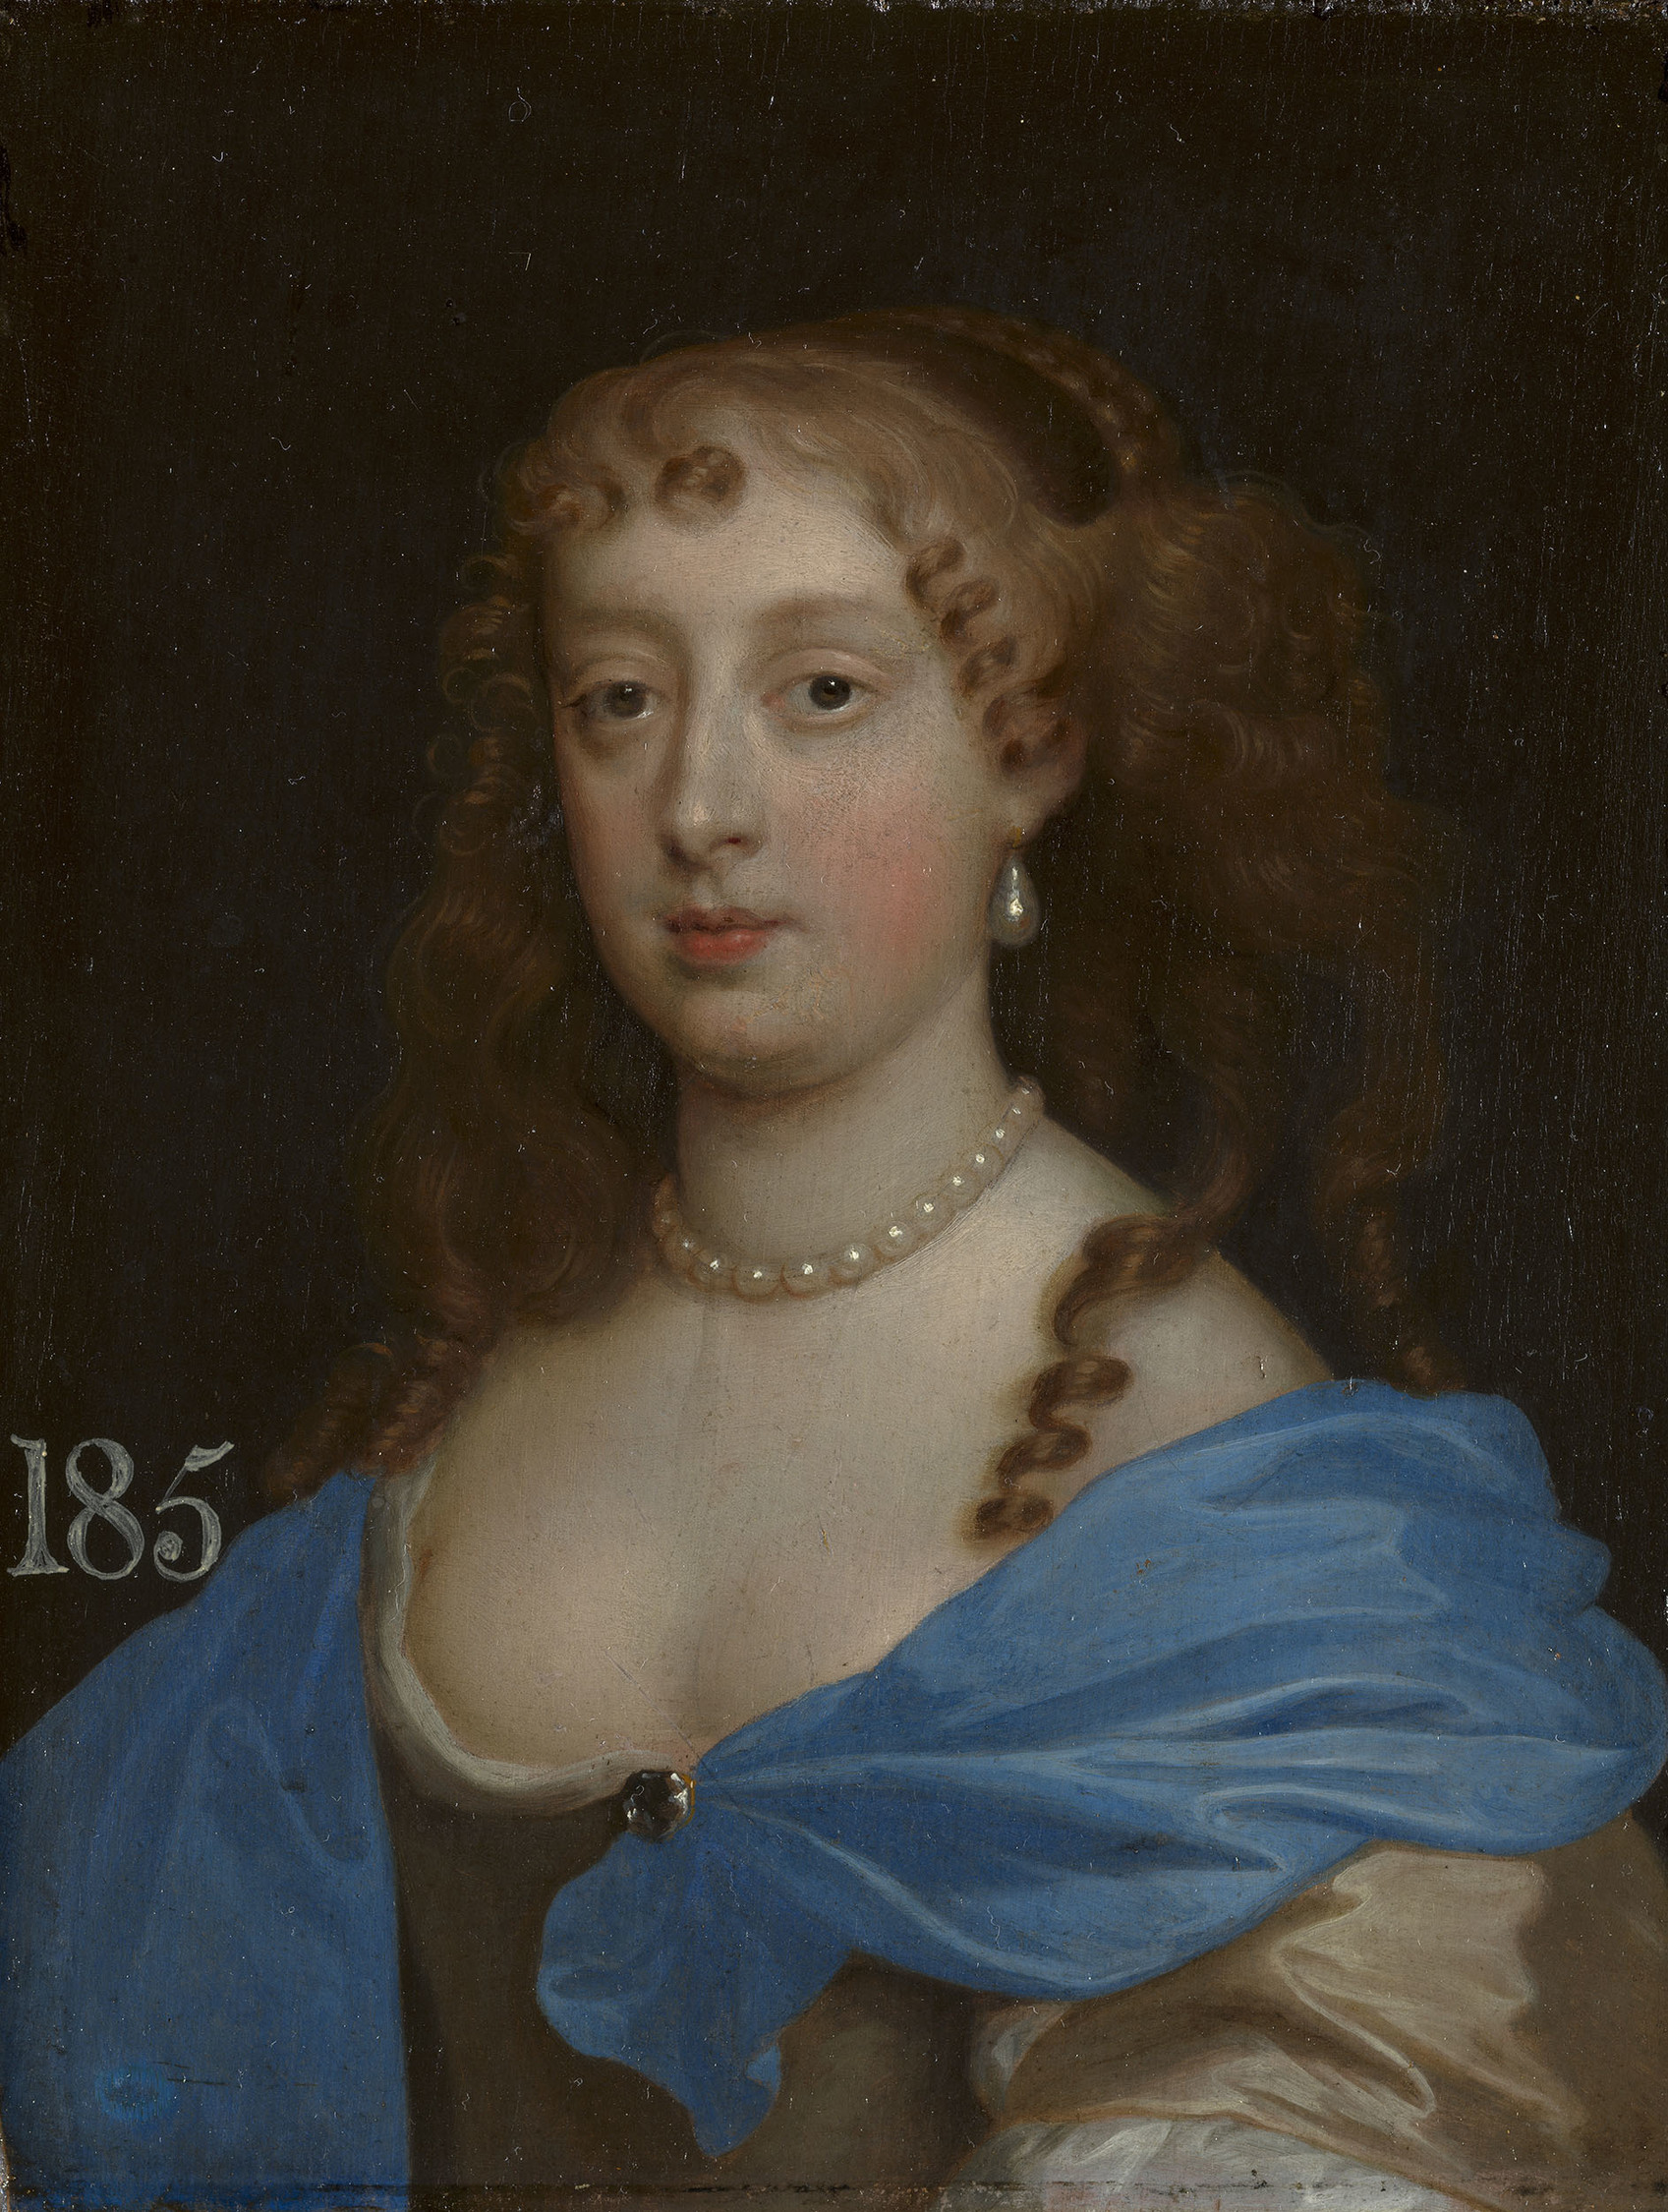 Elizabeth Wriothesley, Countess of Northumberland (1646 – 1690)